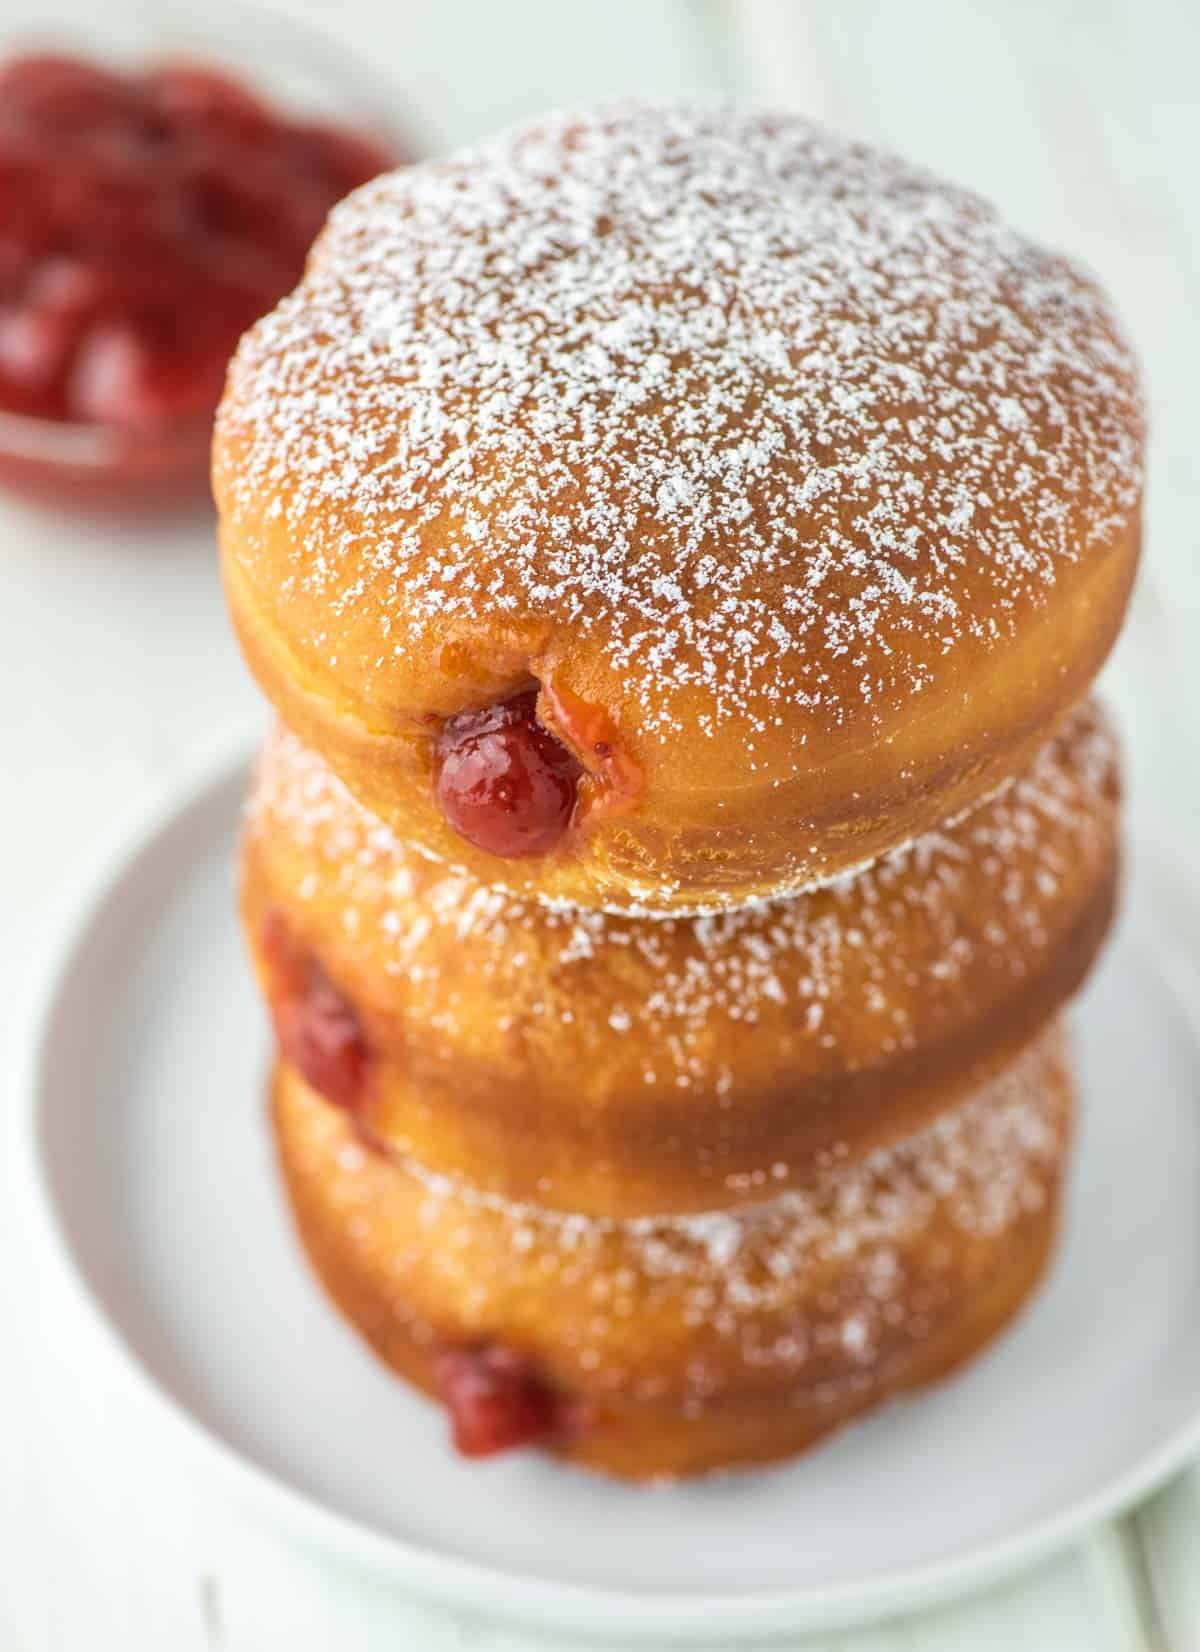 donuts filled with jam stacked on a plate